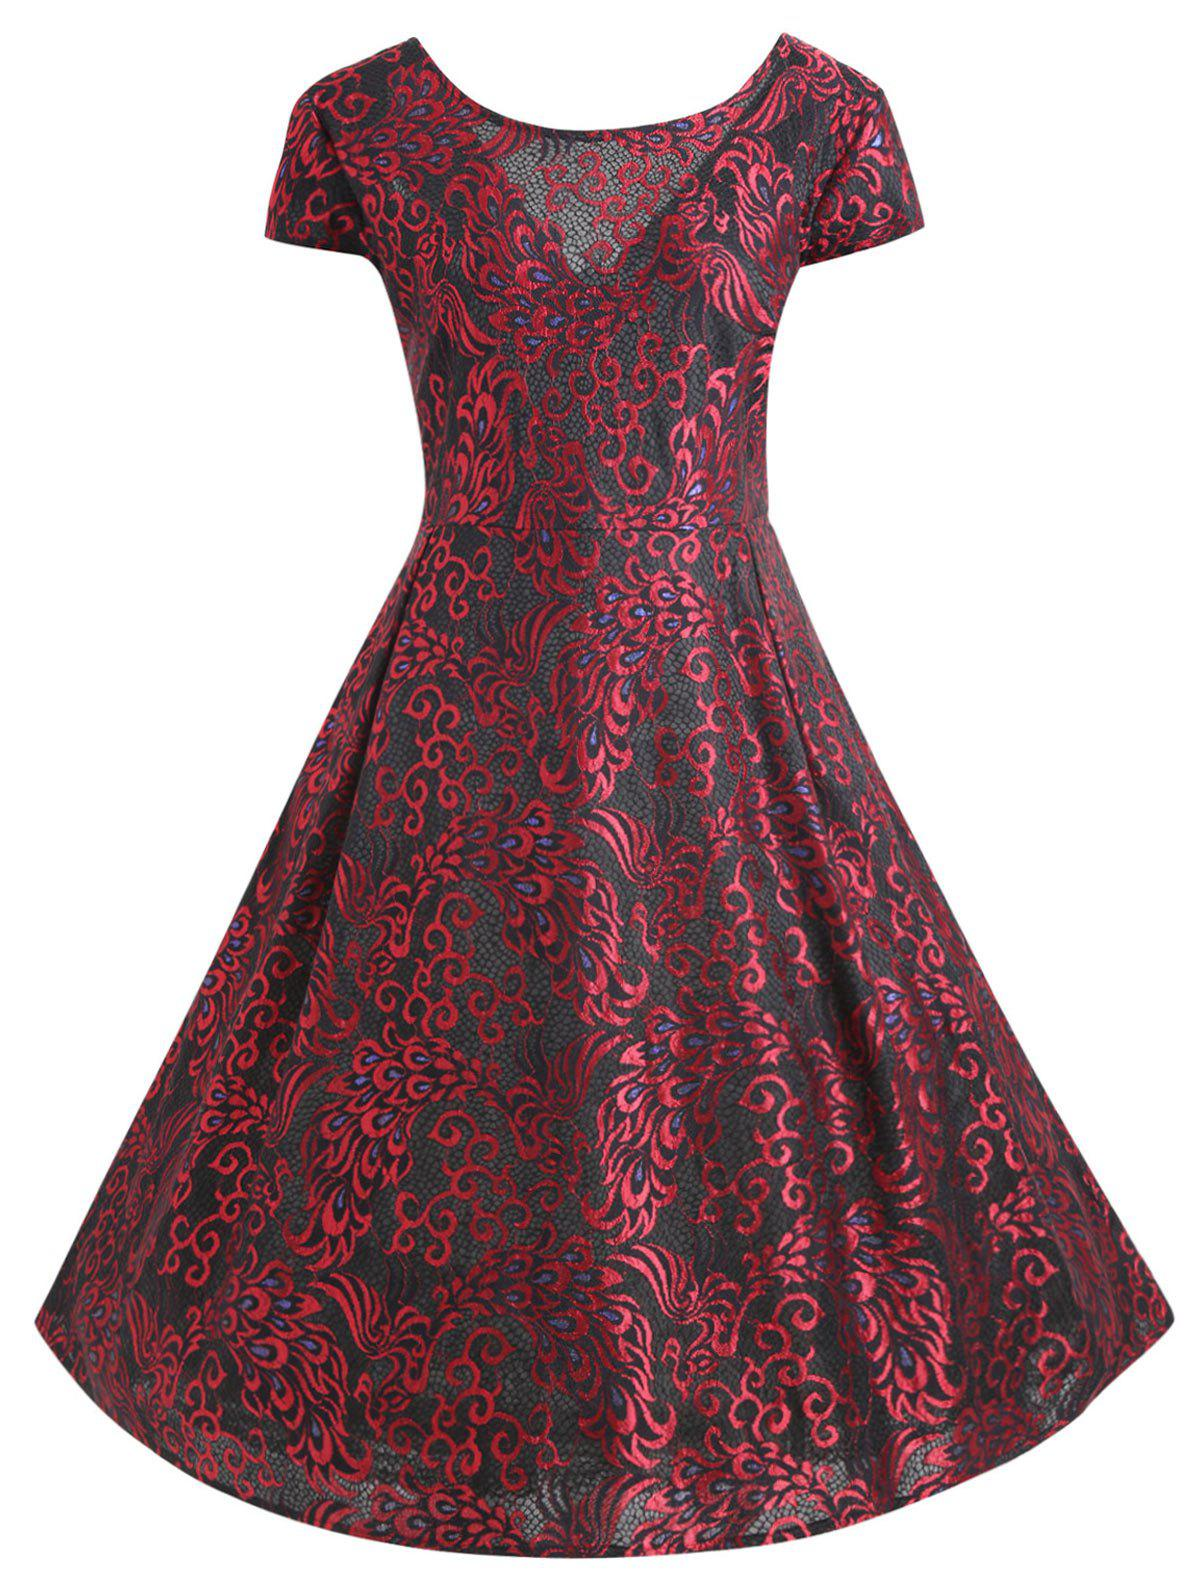 Jacquard Lace Plus Size Midi Rockabilly DressWOMEN<br><br>Size: XL; Color: WINE RED; Style: Vintage; Material: Lace,Polyester; Silhouette: Ball Gown; Dresses Length: Mid-Calf; Neckline: Round Collar; Sleeve Type: Cap Sleeve; Sleeve Length: Short Sleeves; Waist: High Waisted; Embellishment: Lace,Vintage; Pattern Type: Paisley; With Belt: No; Season: Fall,Winter; Weight: 0.4300kg; Package Contents: 1 x Dress;